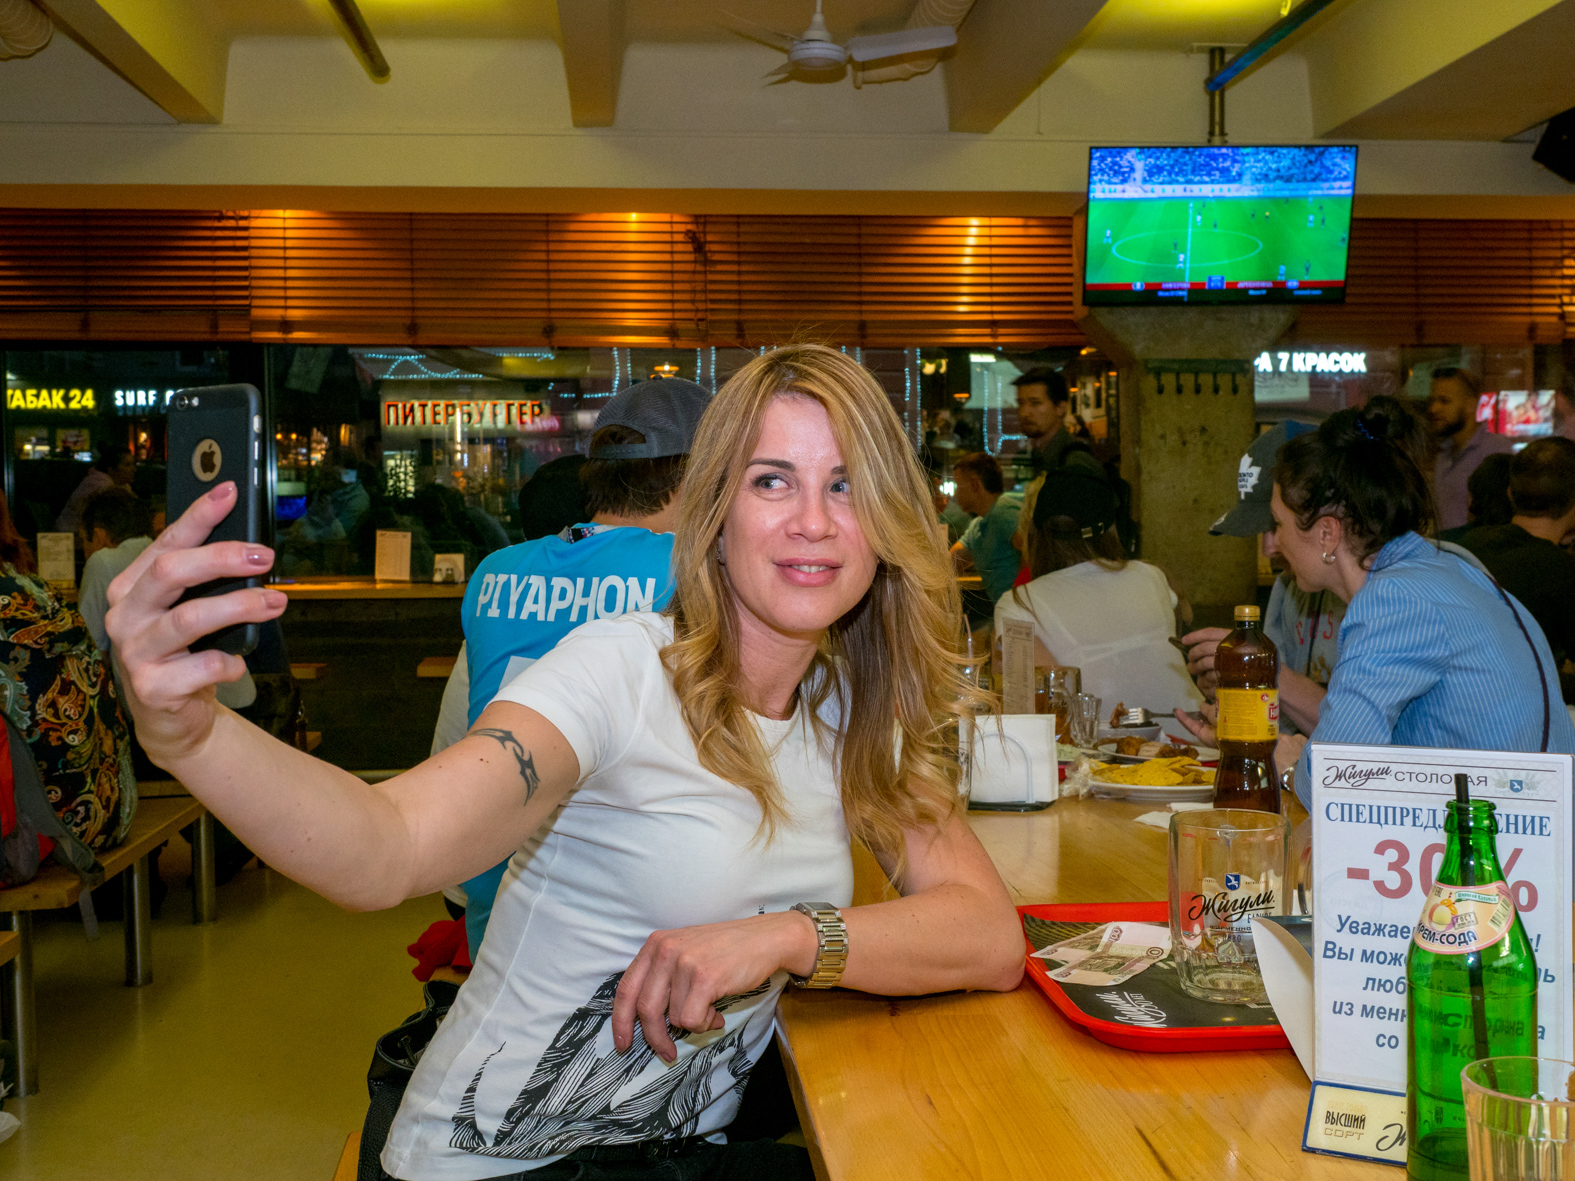 A woman takes a selfie in a Moscow bar during the Nigeria v Argentina match.The 21st FIFA World Cup football tournament took place in Russia in 2018. It was the first World Cup to be held in Eastern Europe and the eleventh time that it has been held in Europe. For the first time the tournament took place on two continents – Europe and Asia. All but two of the stadium venues were in European Russia.